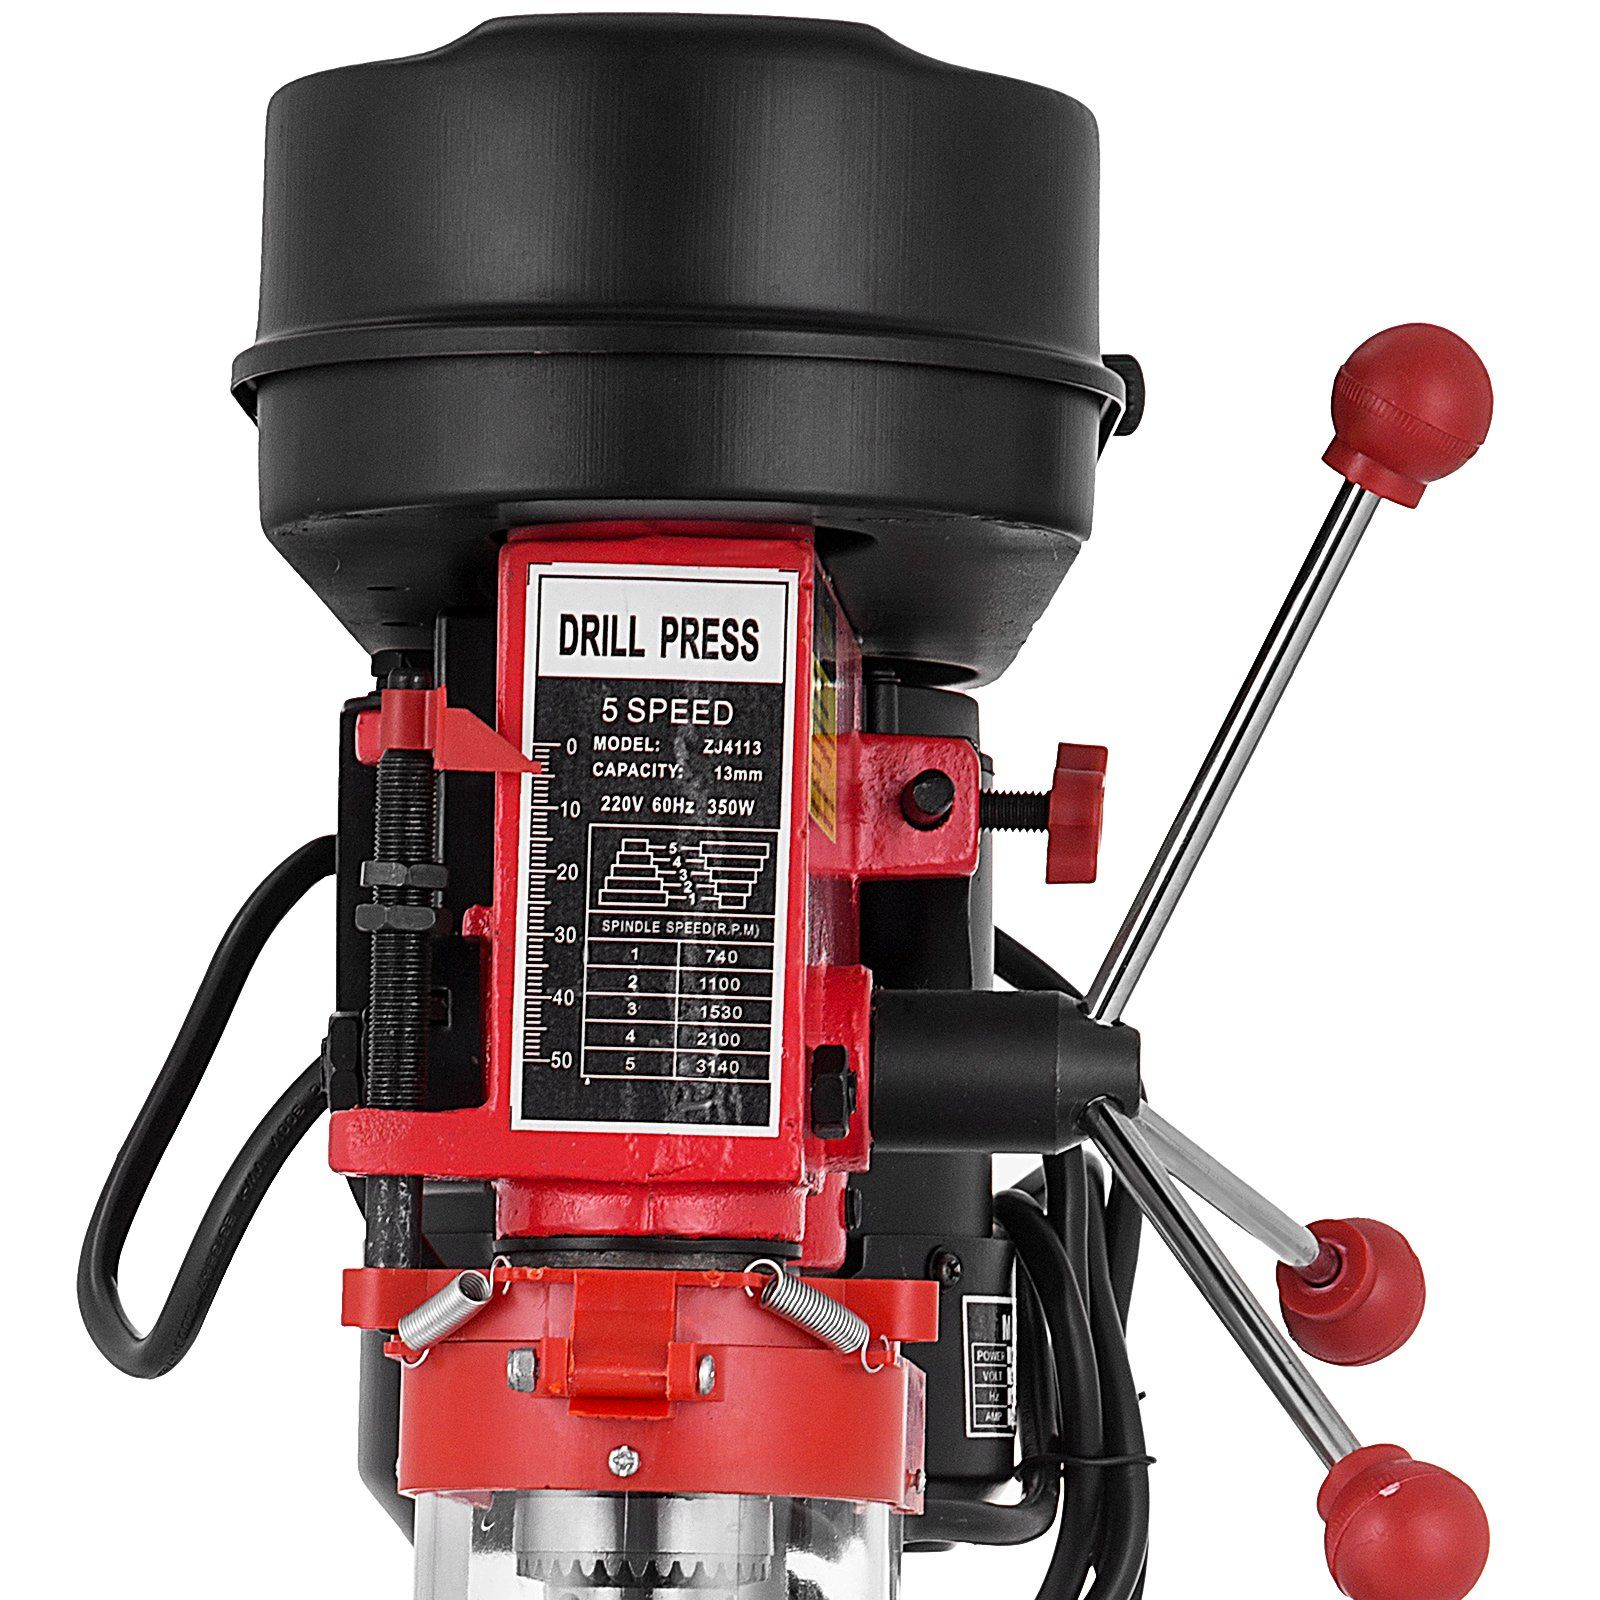 Dreamjoy 8 Inch 5speed Benchtop Drill Press 350w 220v Industrial Electric Mini Stand Press Mount Bench Drill Machine 13mm Drill Press Drill Industrial Electric